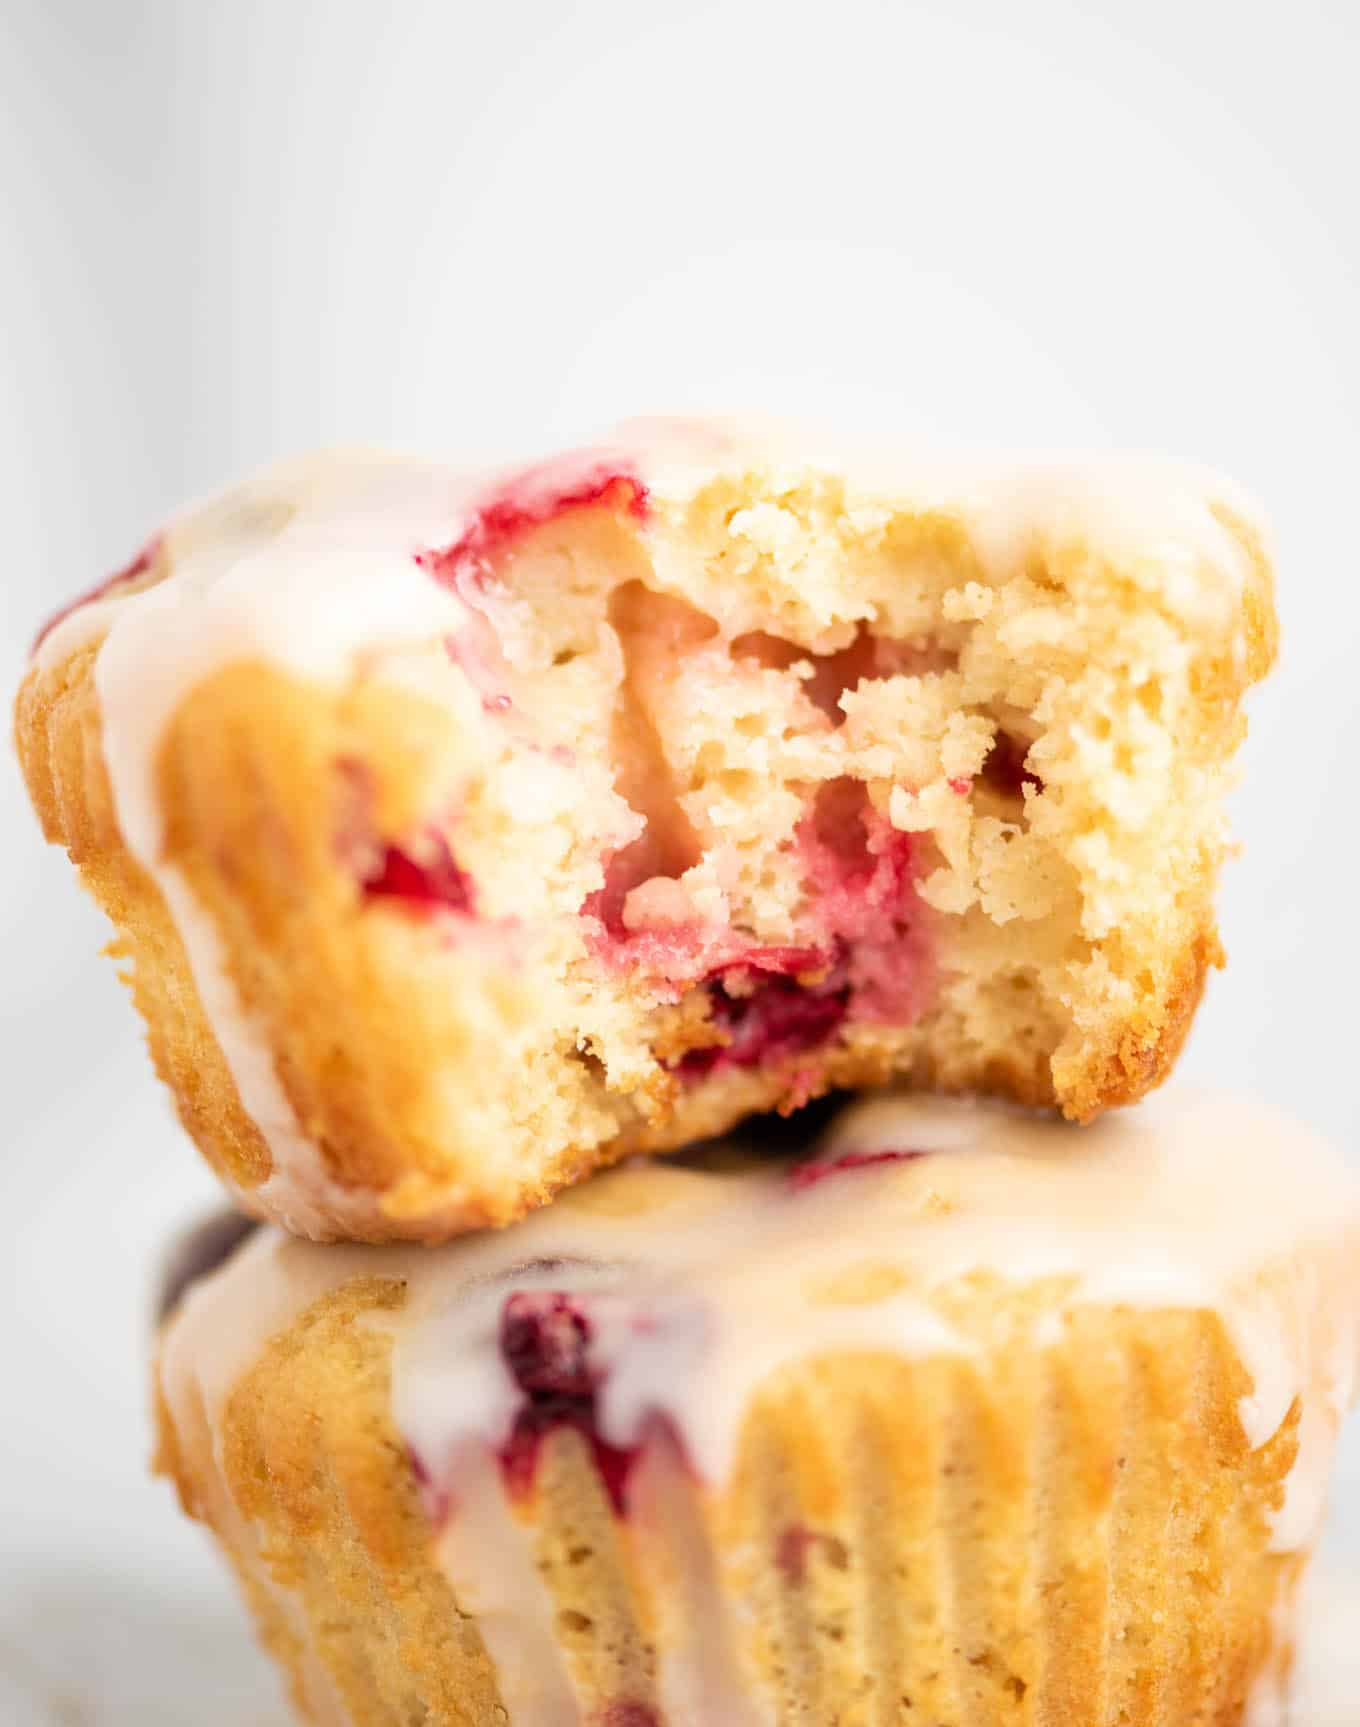 lemon cranberry muffin with a bite taken out